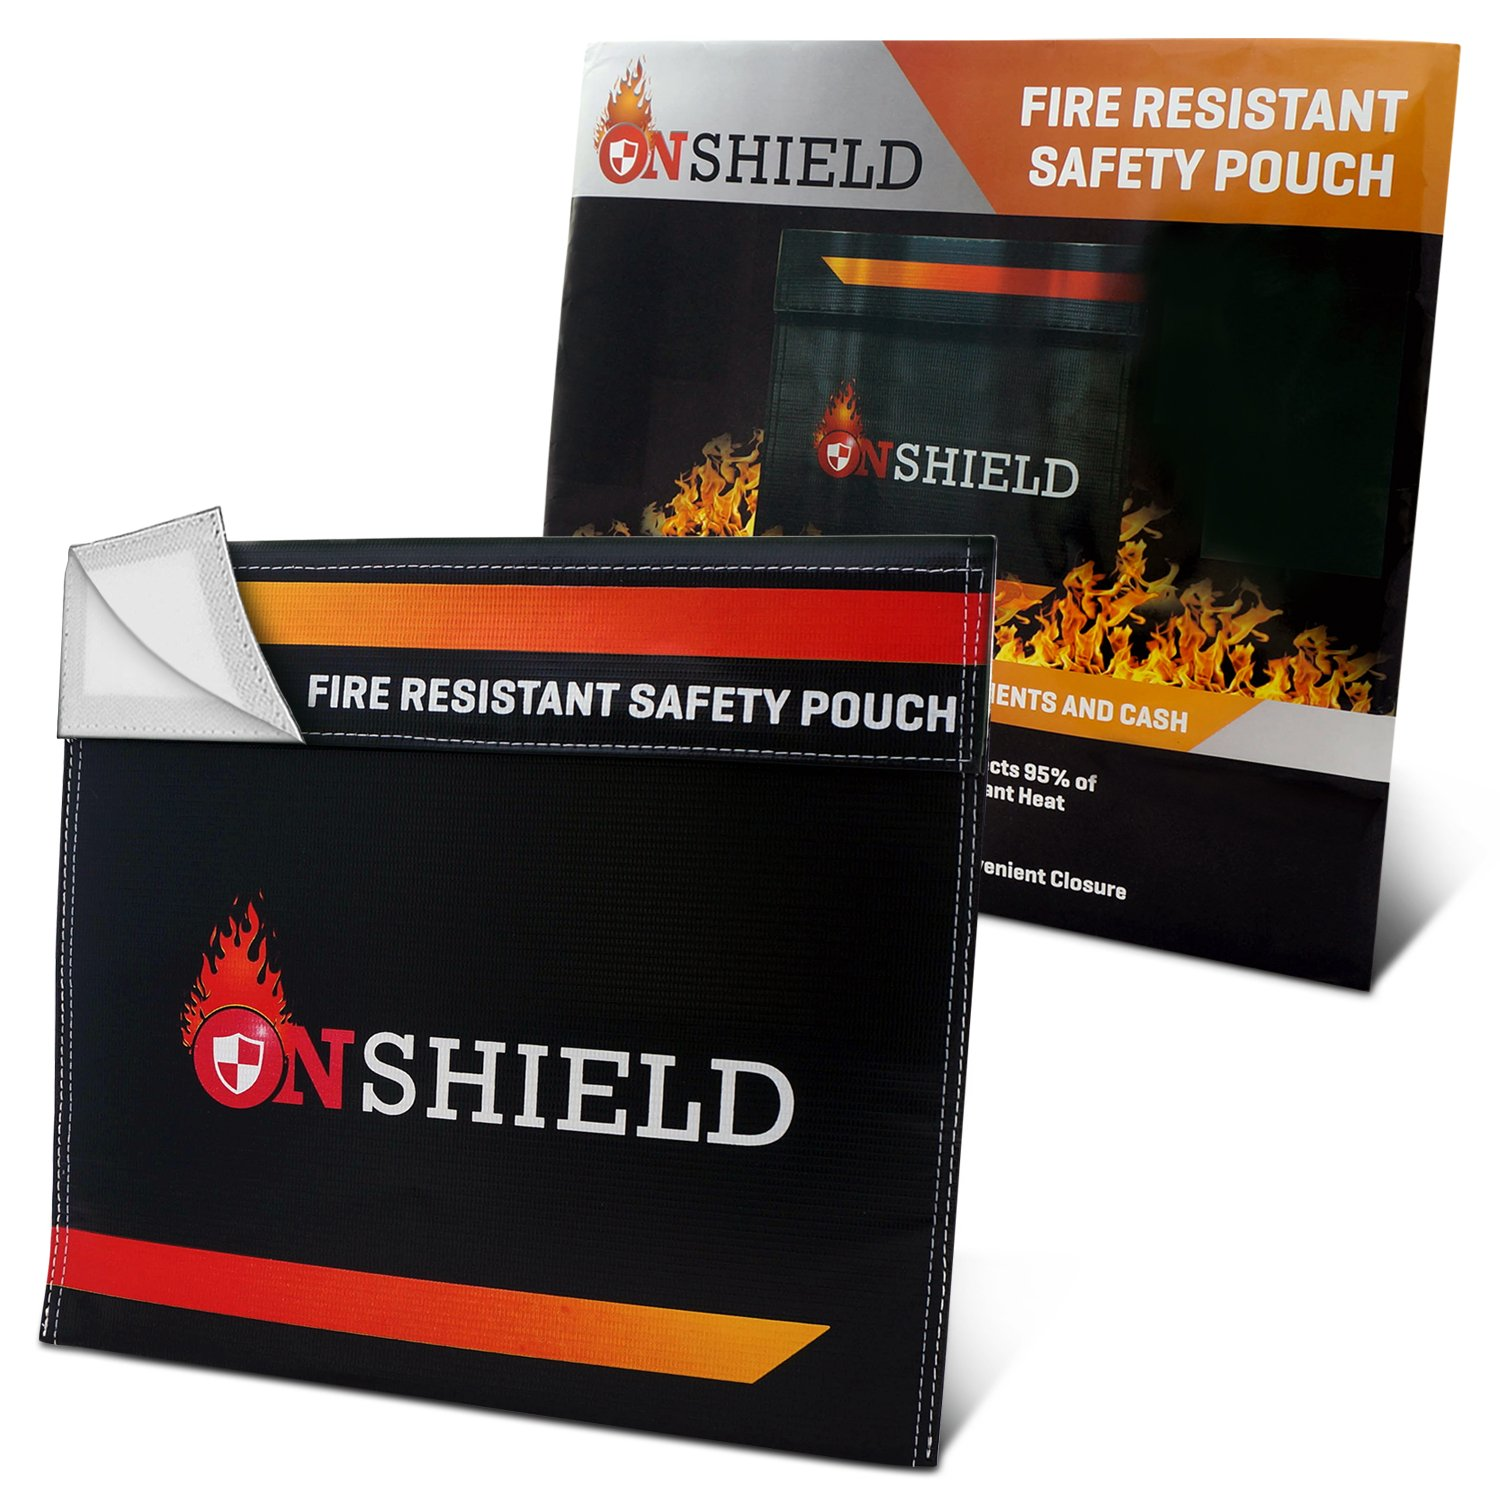 Fire Resistant Document Bag by OnShield 12'' x 11'' | Heavy Duty and Non-itchy Fireproof Document Bag | Fireproof Bag for Cash, Birth Certificate, Passport, Important Documents